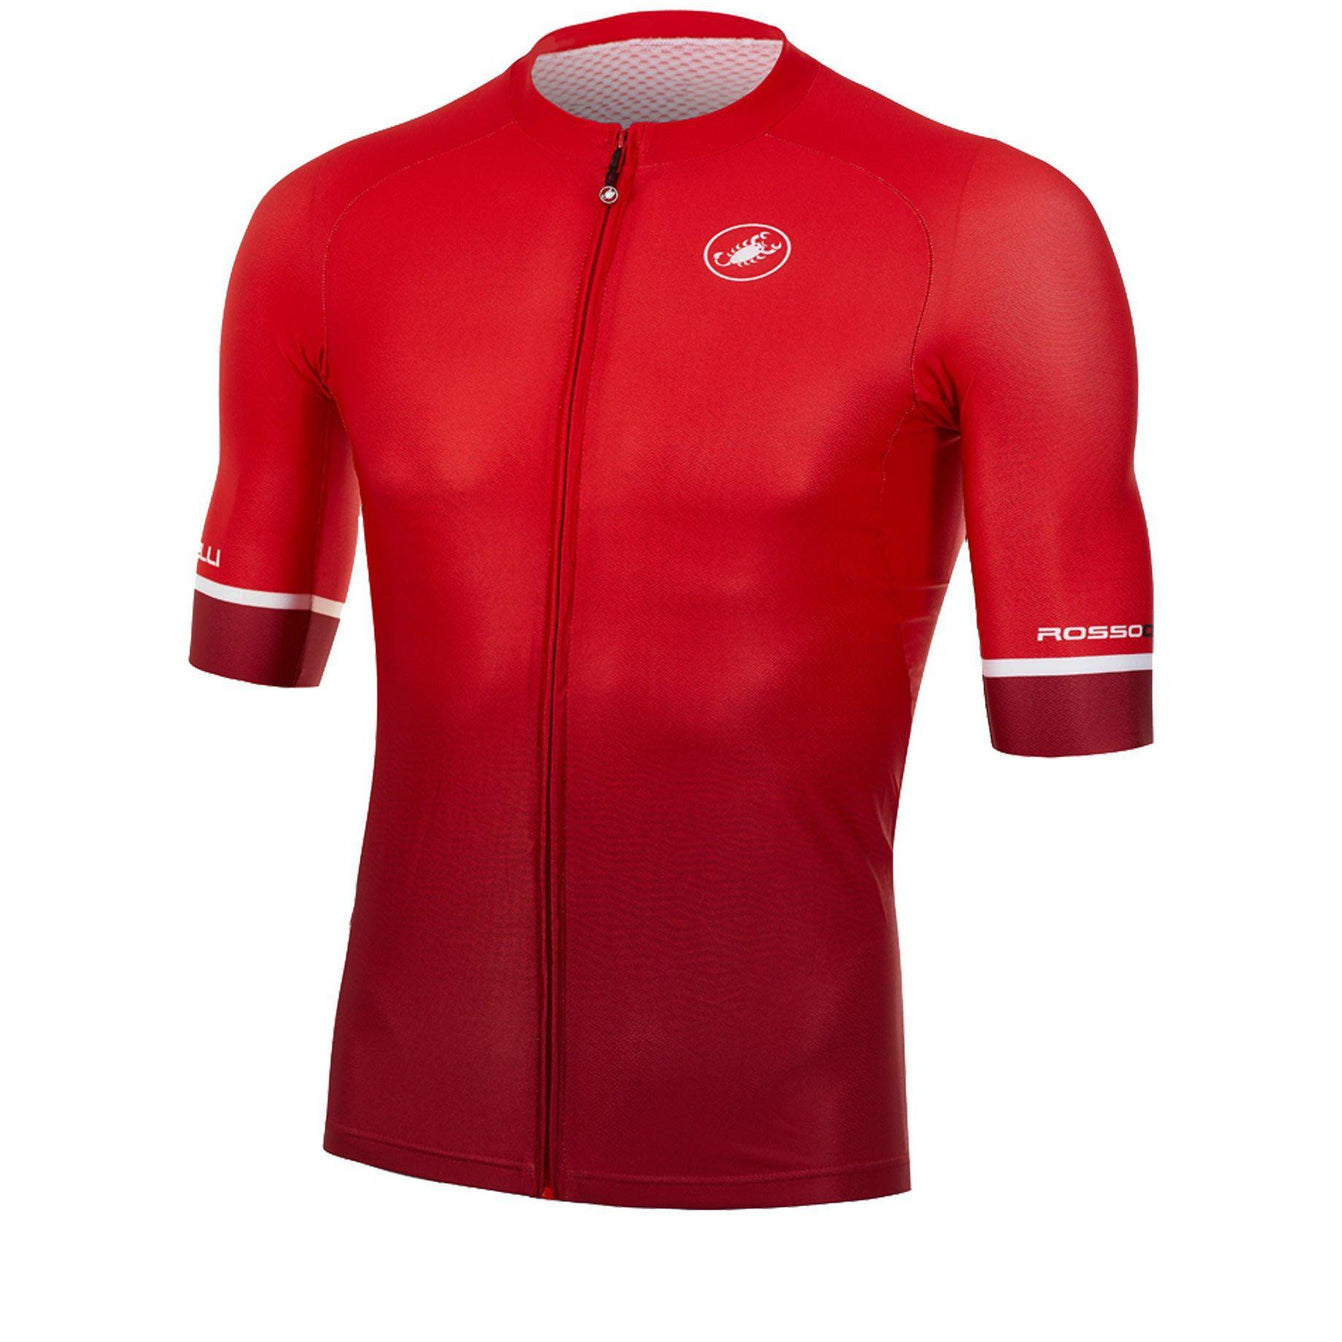 Castelli-Castelli Aero Race 6.0 Jersey-Red-S-CS45200110232-saddleback-elite-performance-cycling